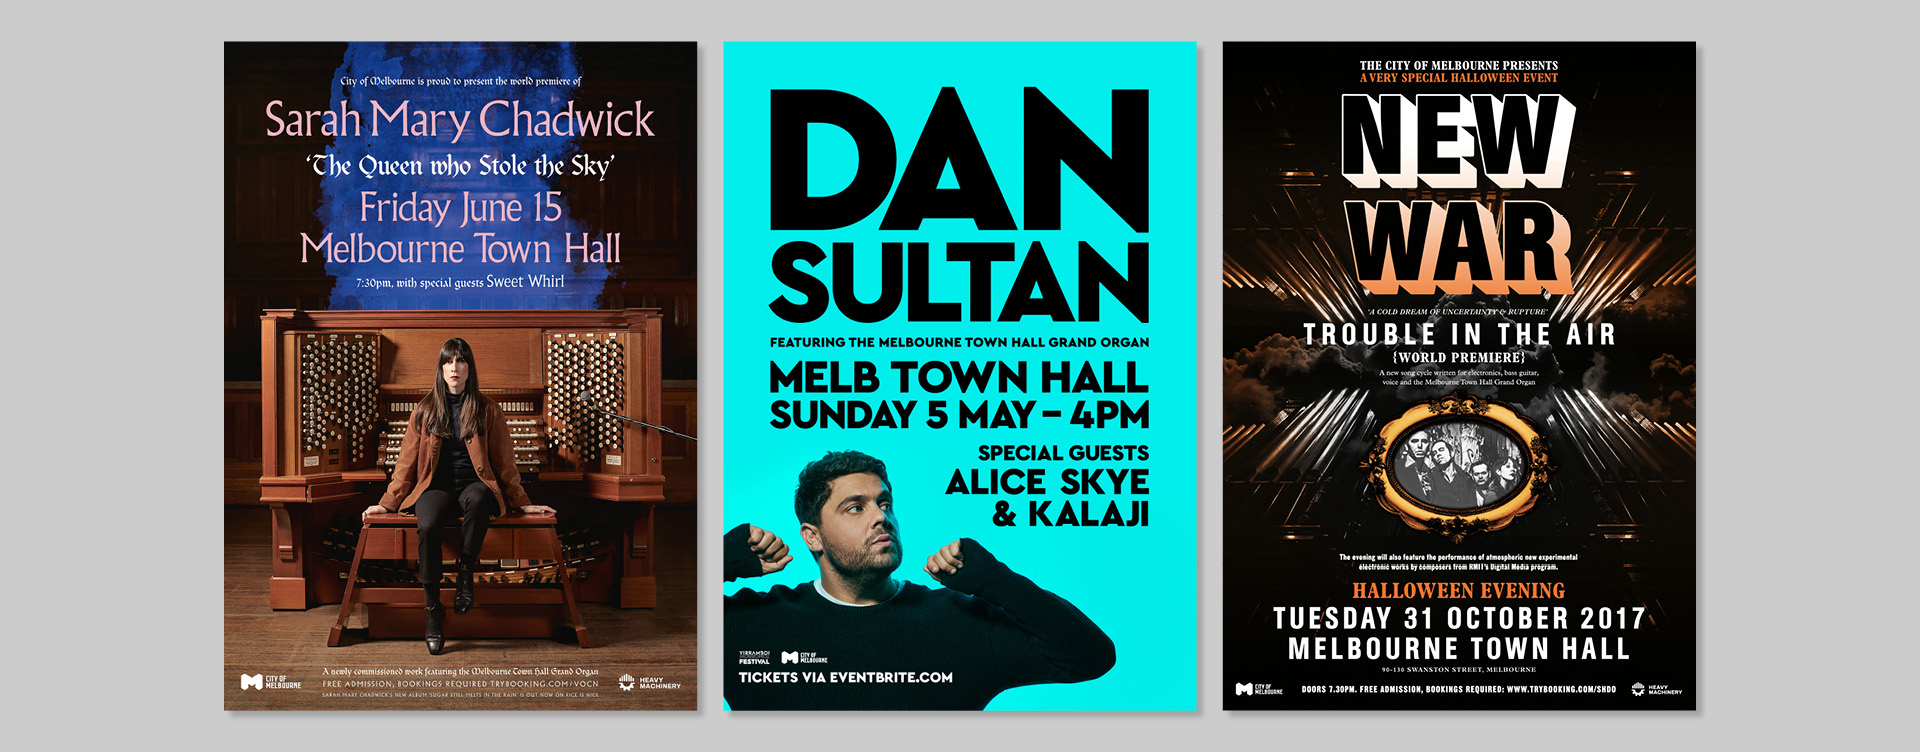 City of Melbourne Grand Organ Marketing Campaign Poster Design Sarah Mary Chadwick Dan Sultan New War Melbourne Town Hall